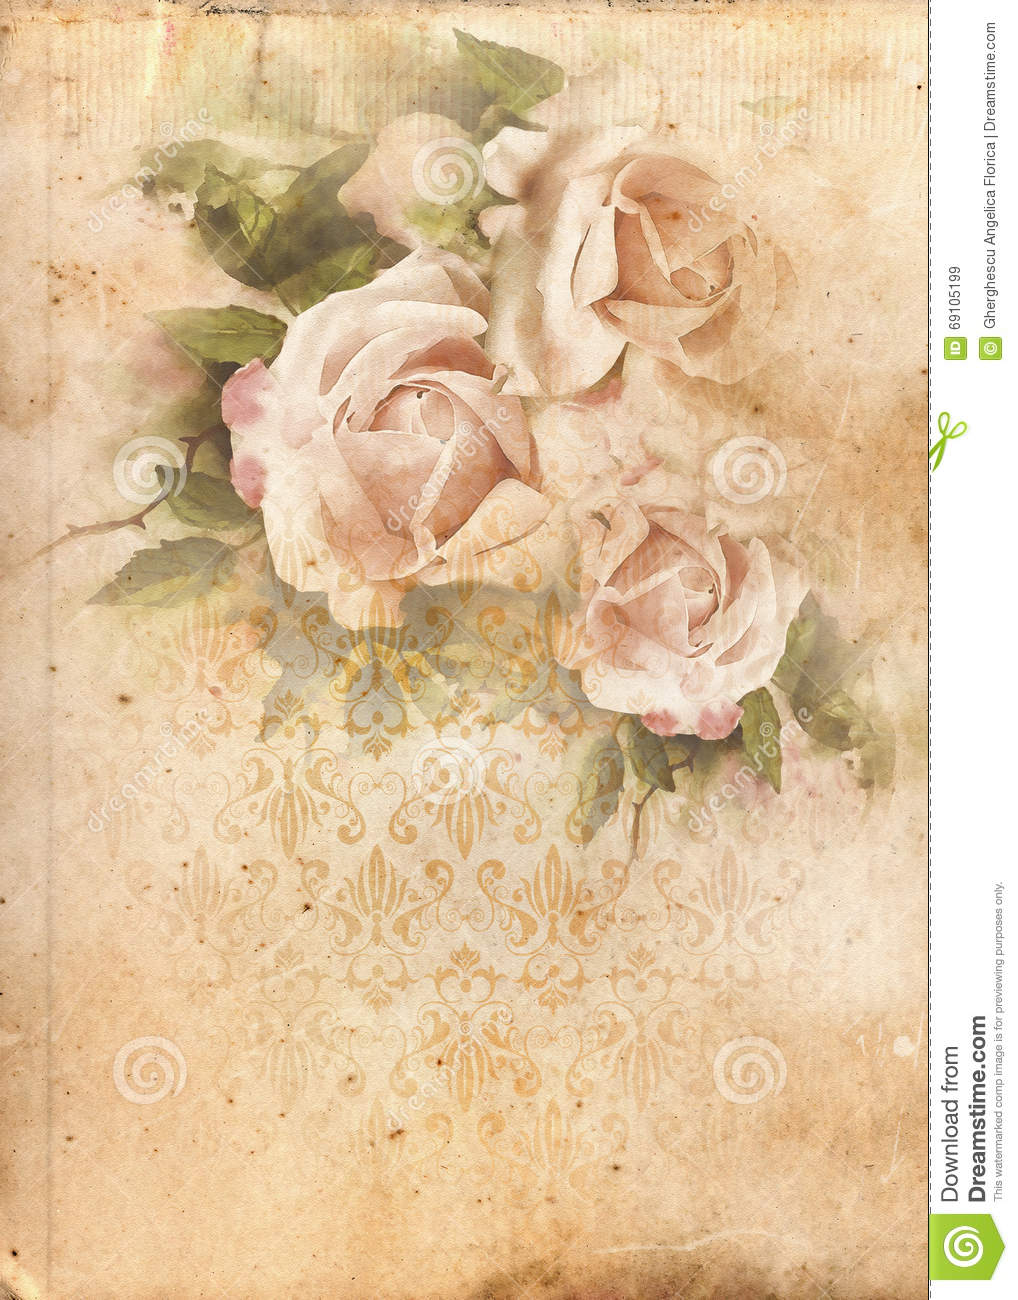 roses vintage shabby chic background stock illustration. Black Bedroom Furniture Sets. Home Design Ideas